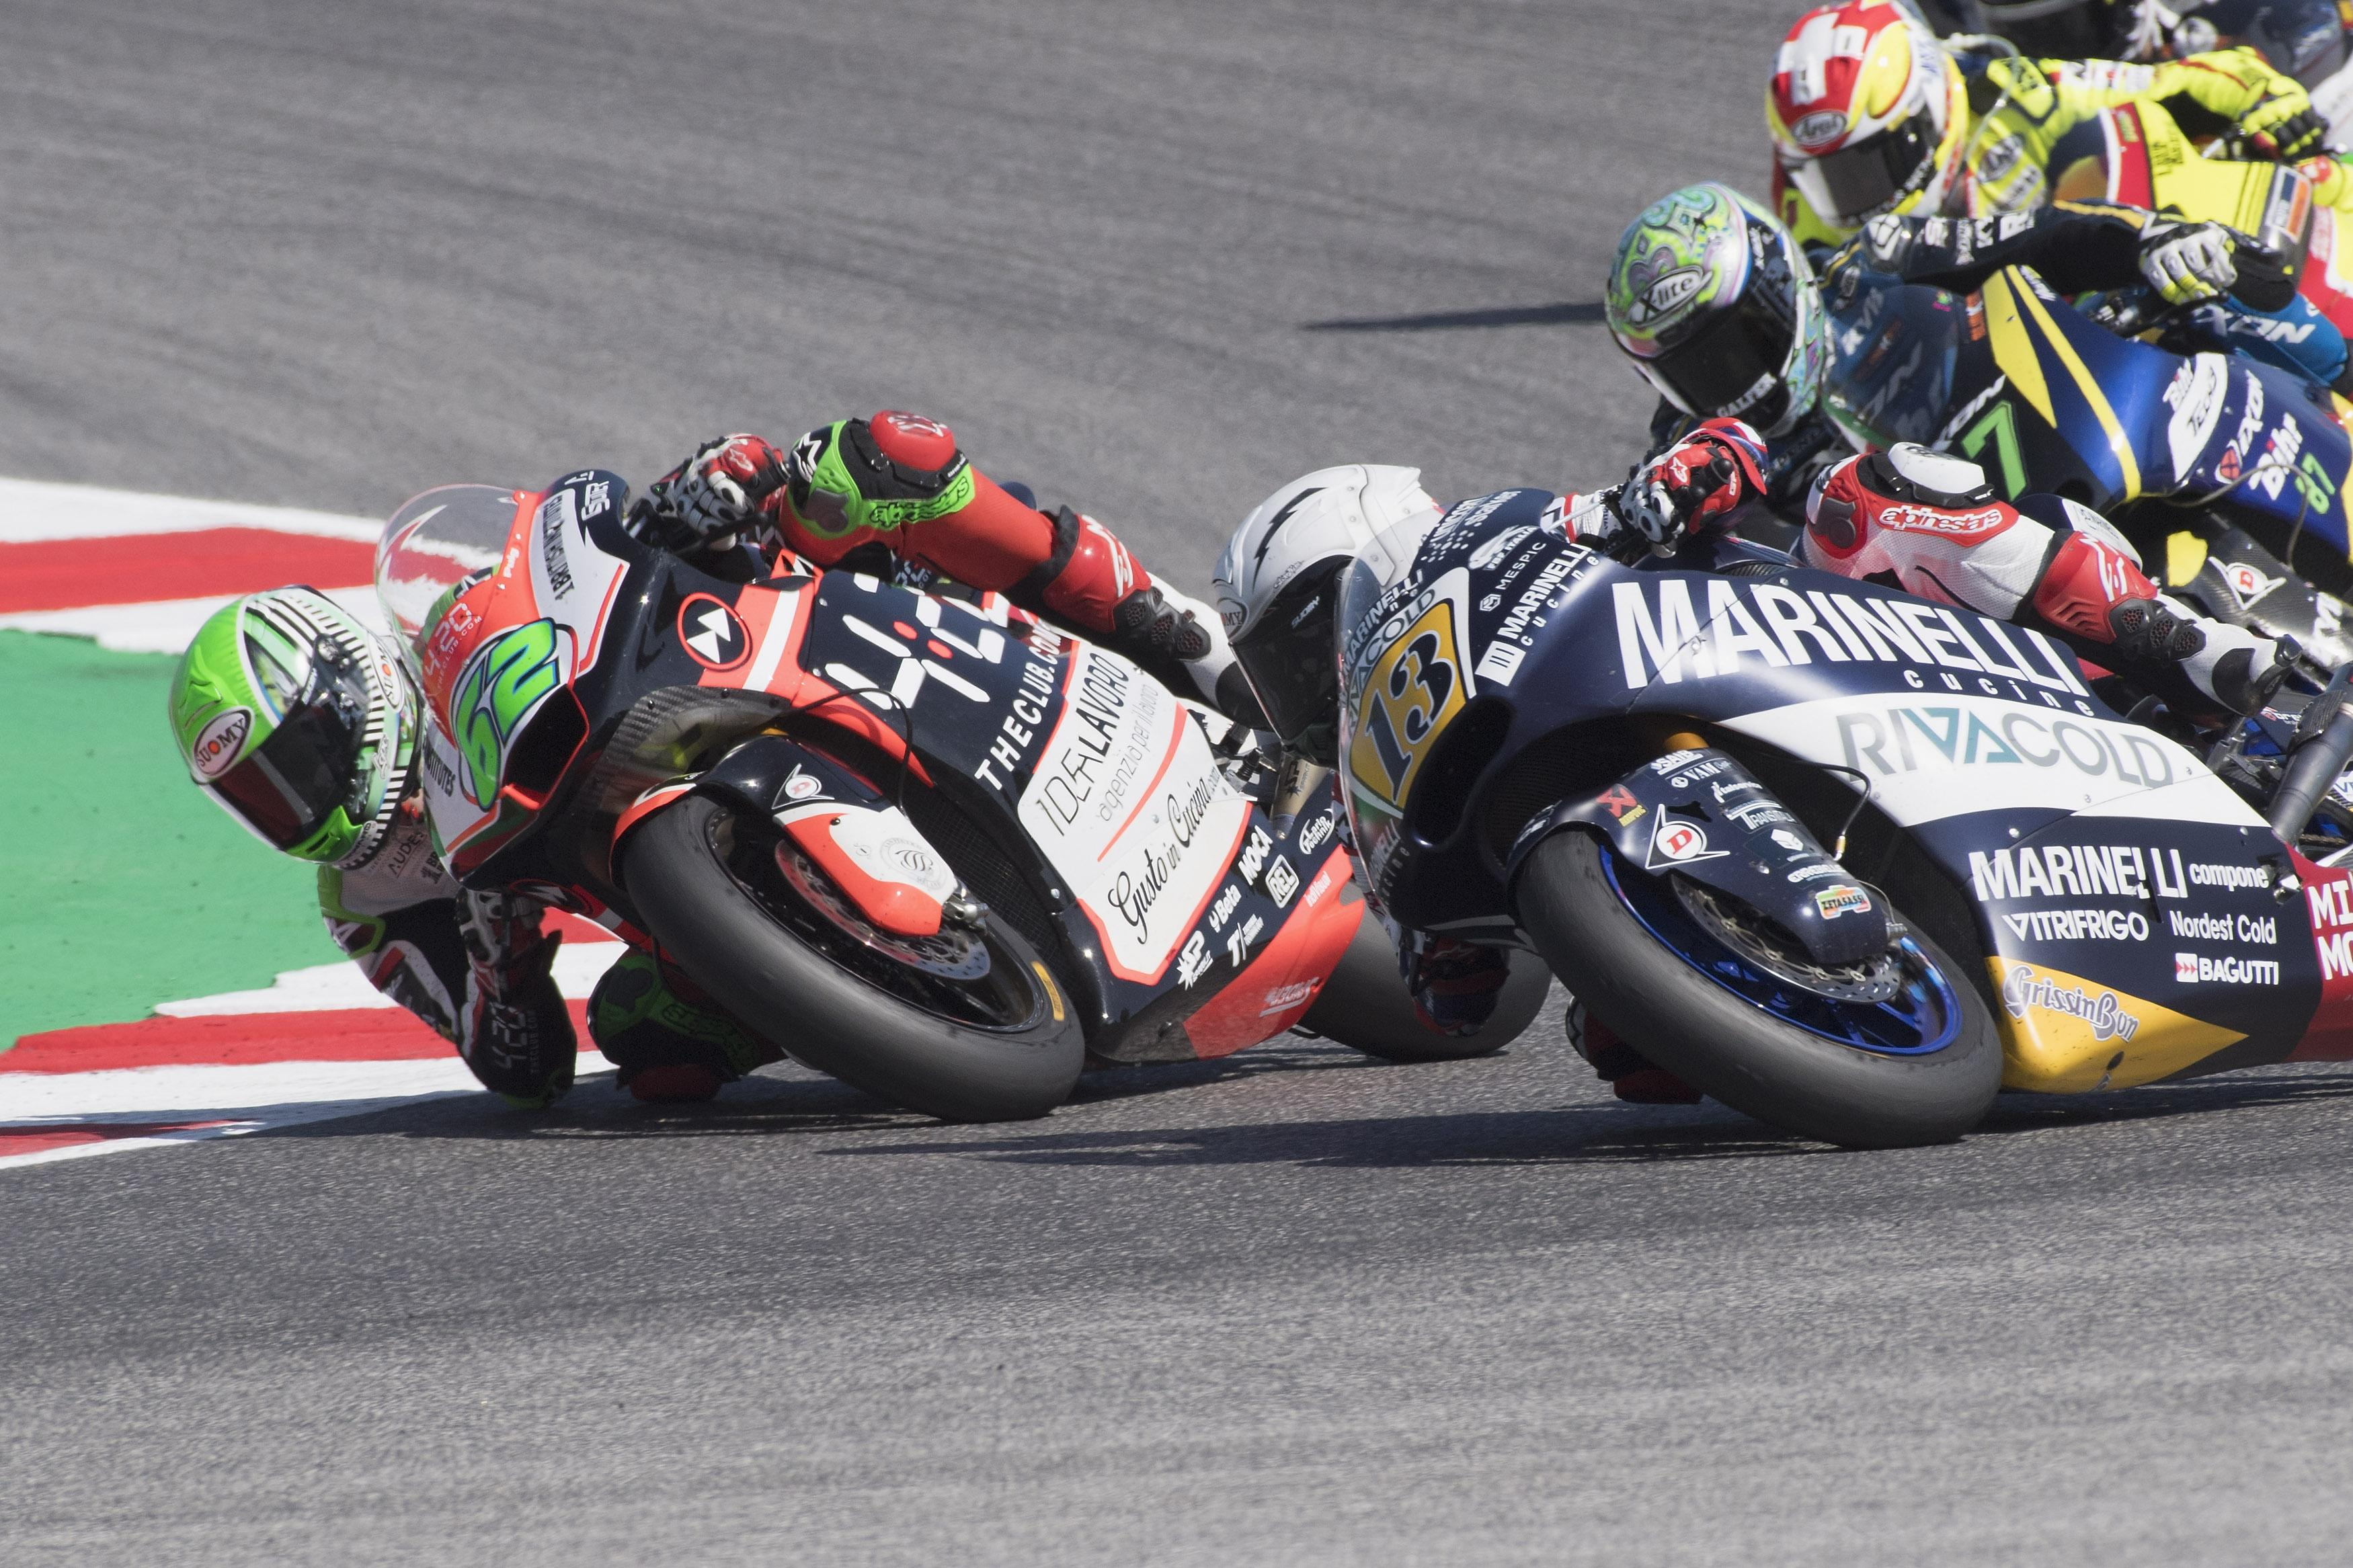 The 22-year-old was desperate to gain an advantage of his rival in the Moto2 race